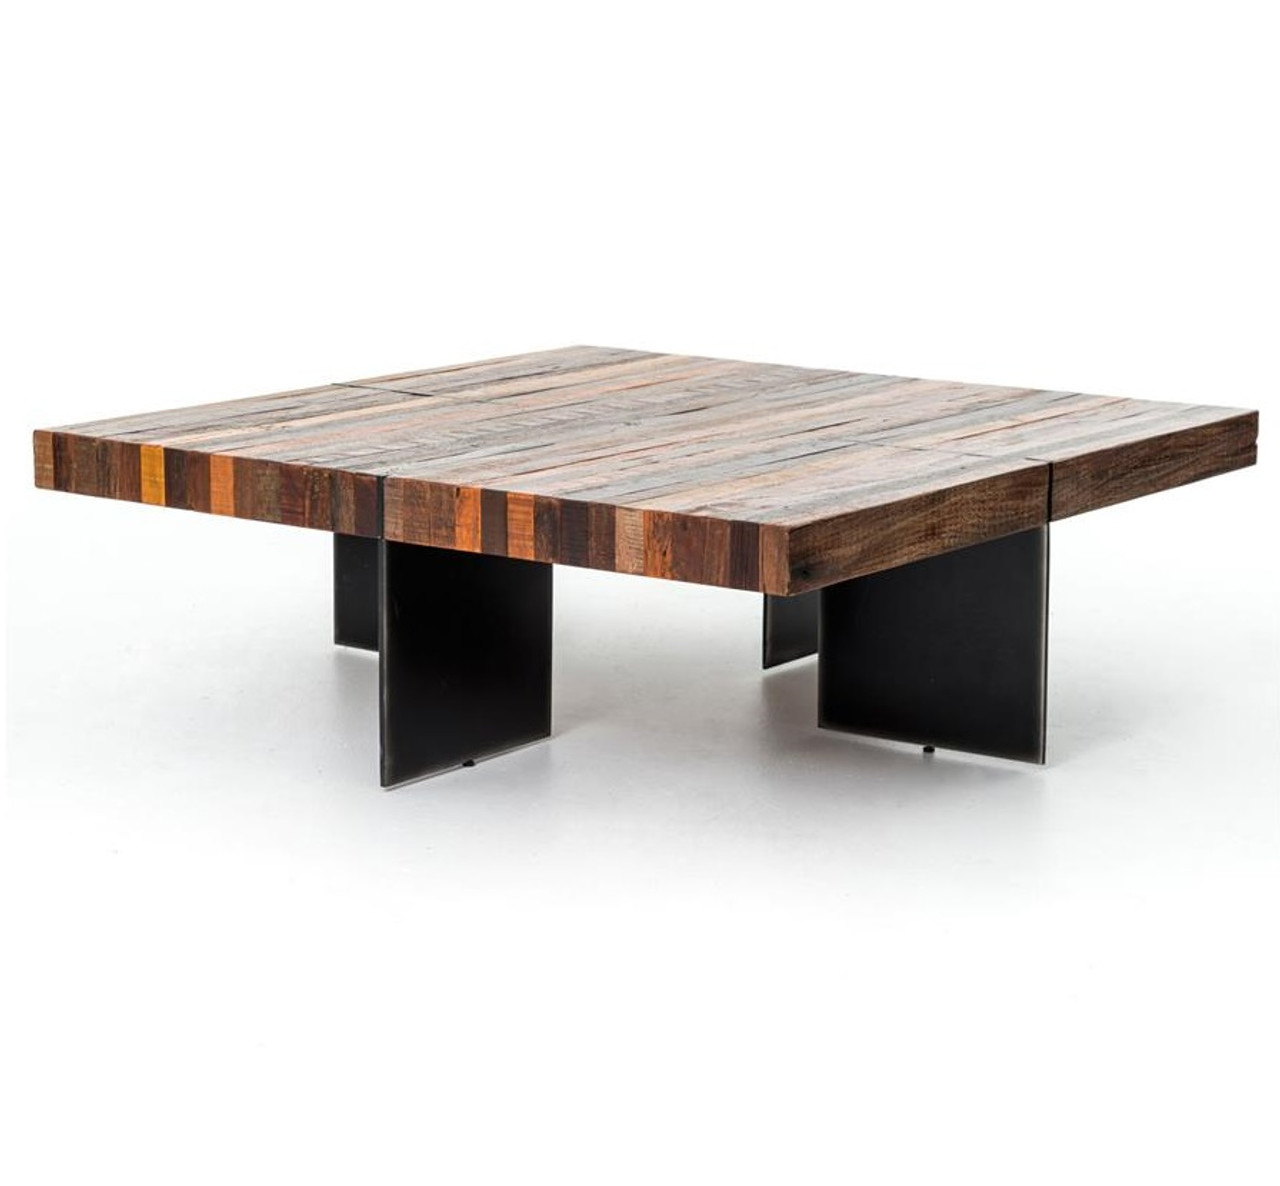 Alec Industrial U0026 Rustic Square Coffee Table